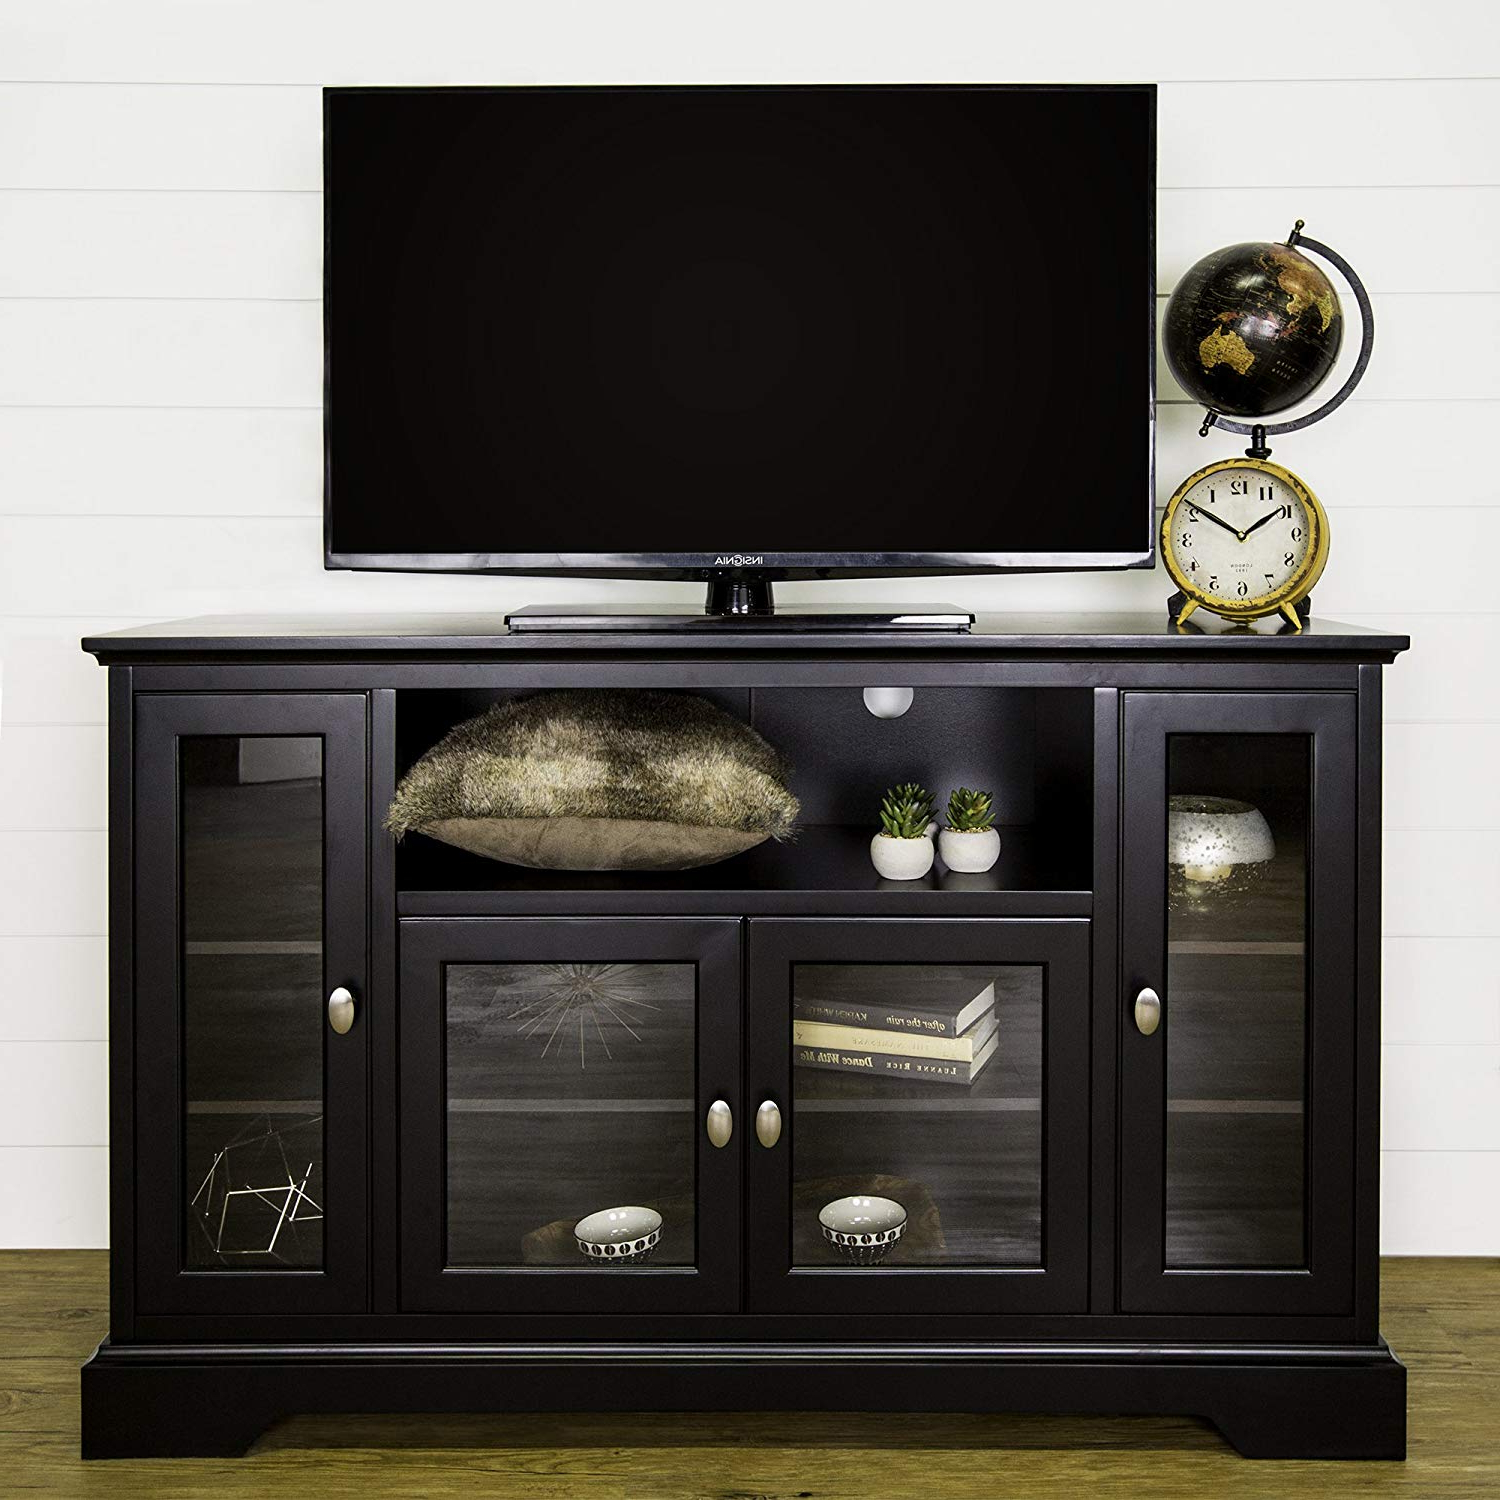 "Amazon: We Furniture 52"" Wood Highboy Style Tall Tv Stand For Most Popular Corner Tv Stands With Drawers (View 2 of 20)"